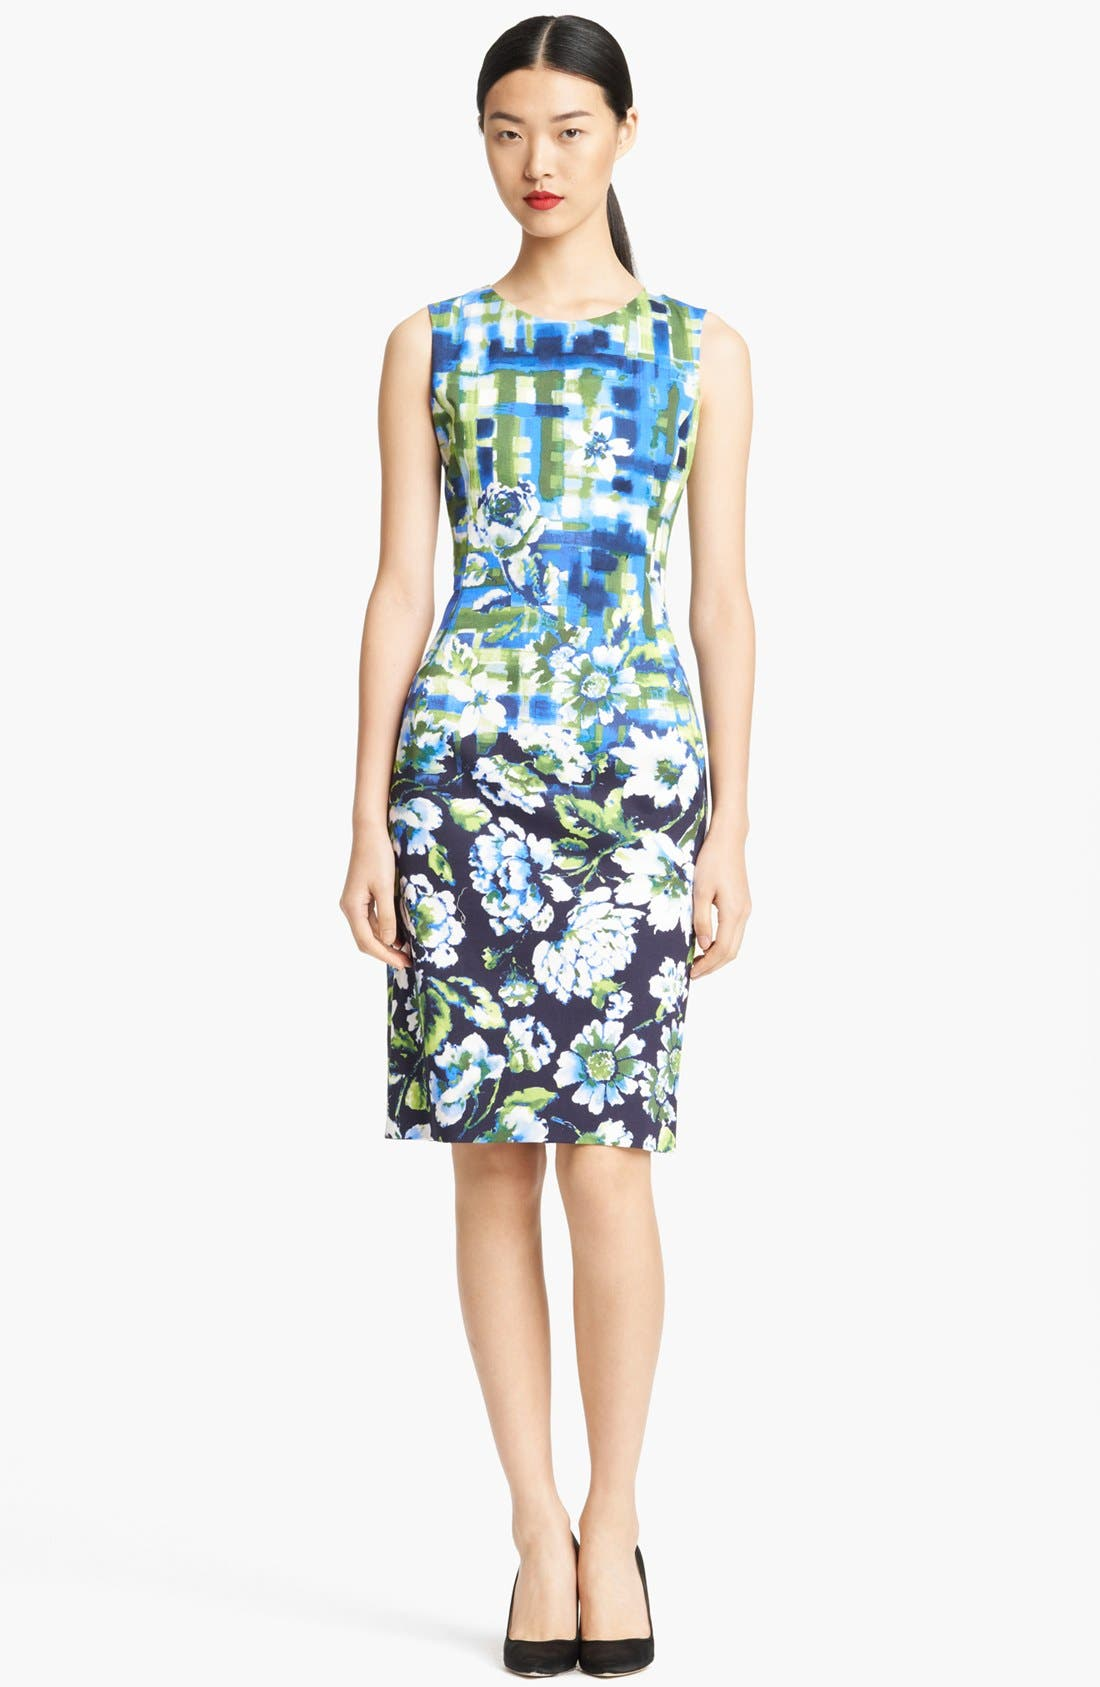 Alternate Image 1 Selected - Oscar de la Renta Painted Floral Print Sheath Dress